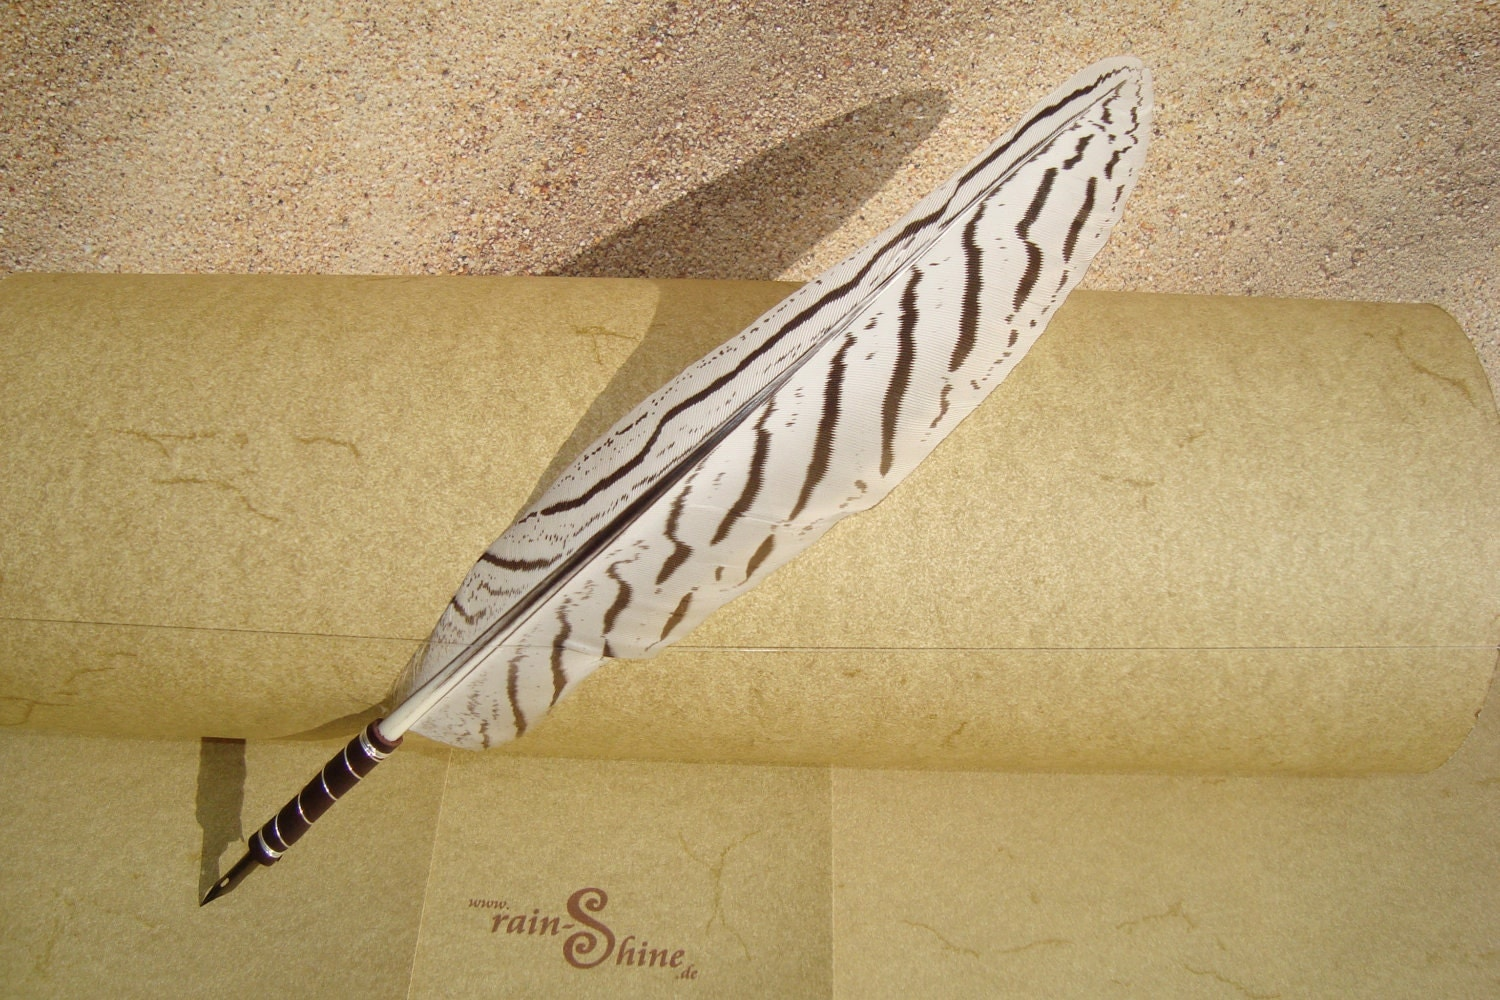 Silver Pheasant Feather Quill Pen For Calligraphy L127